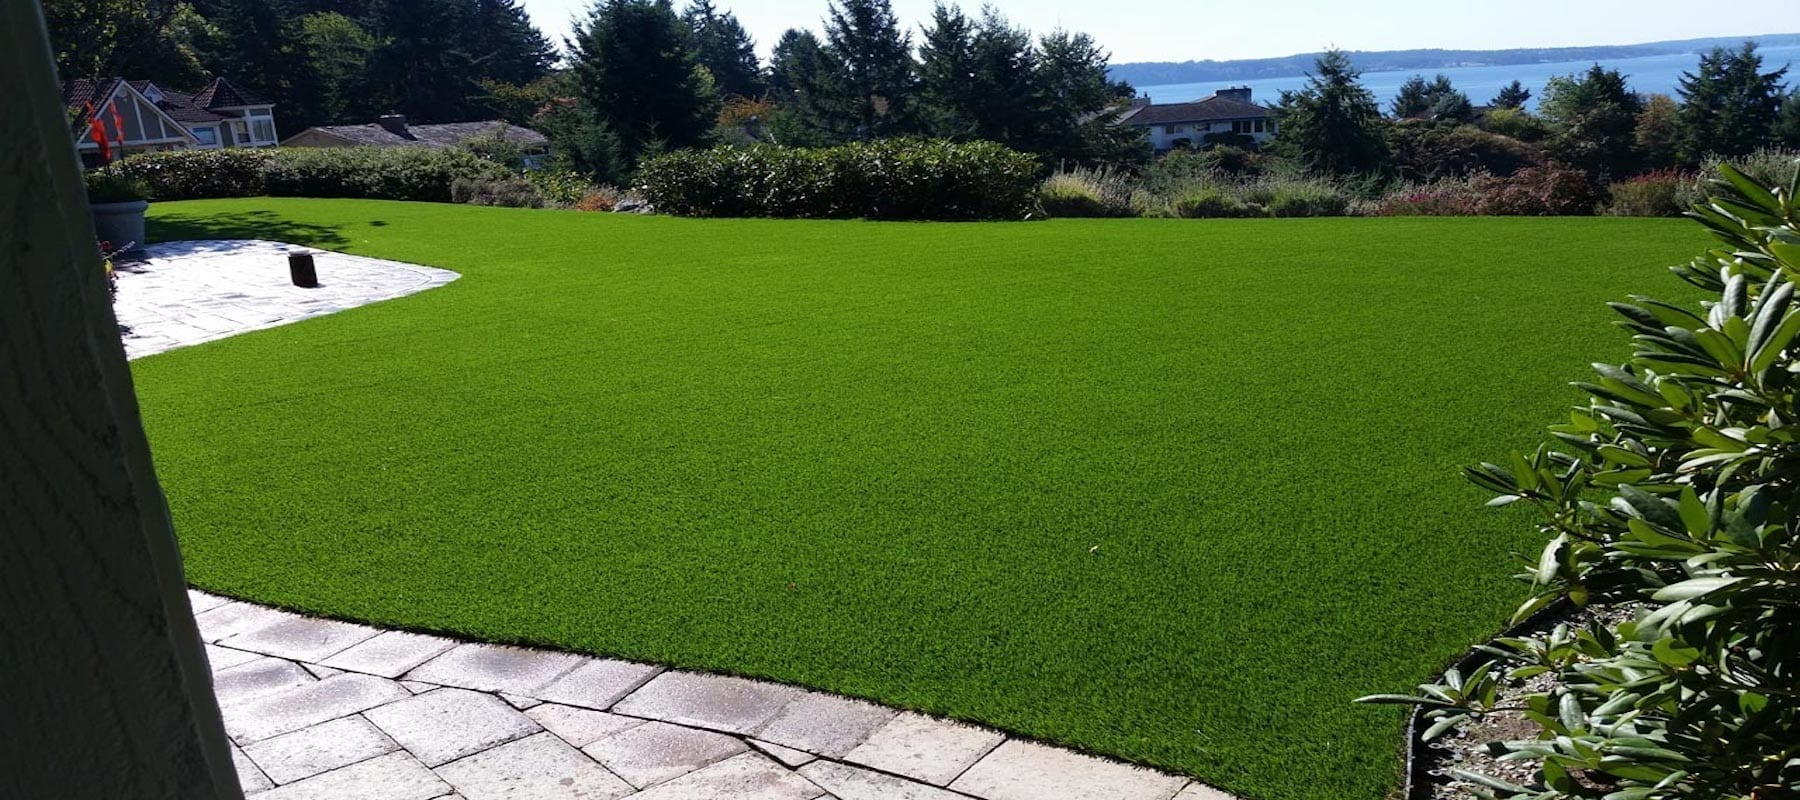 Artificial Grass Amp Synthetic Turf For Lawns Landscaping